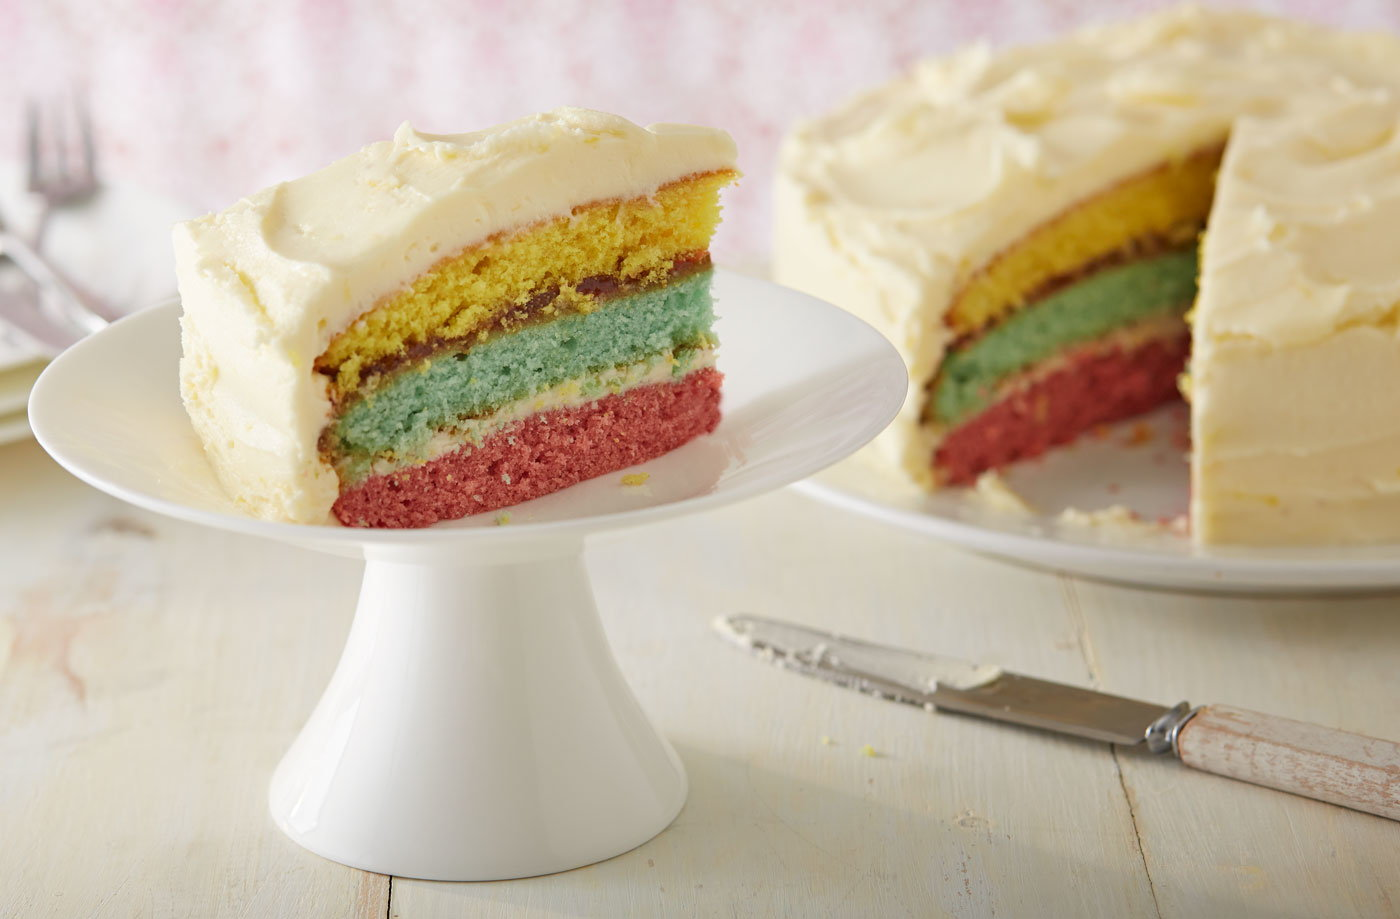 Cake With Photo Tesco : Lemon icing rainbow cake Tesco Real Food